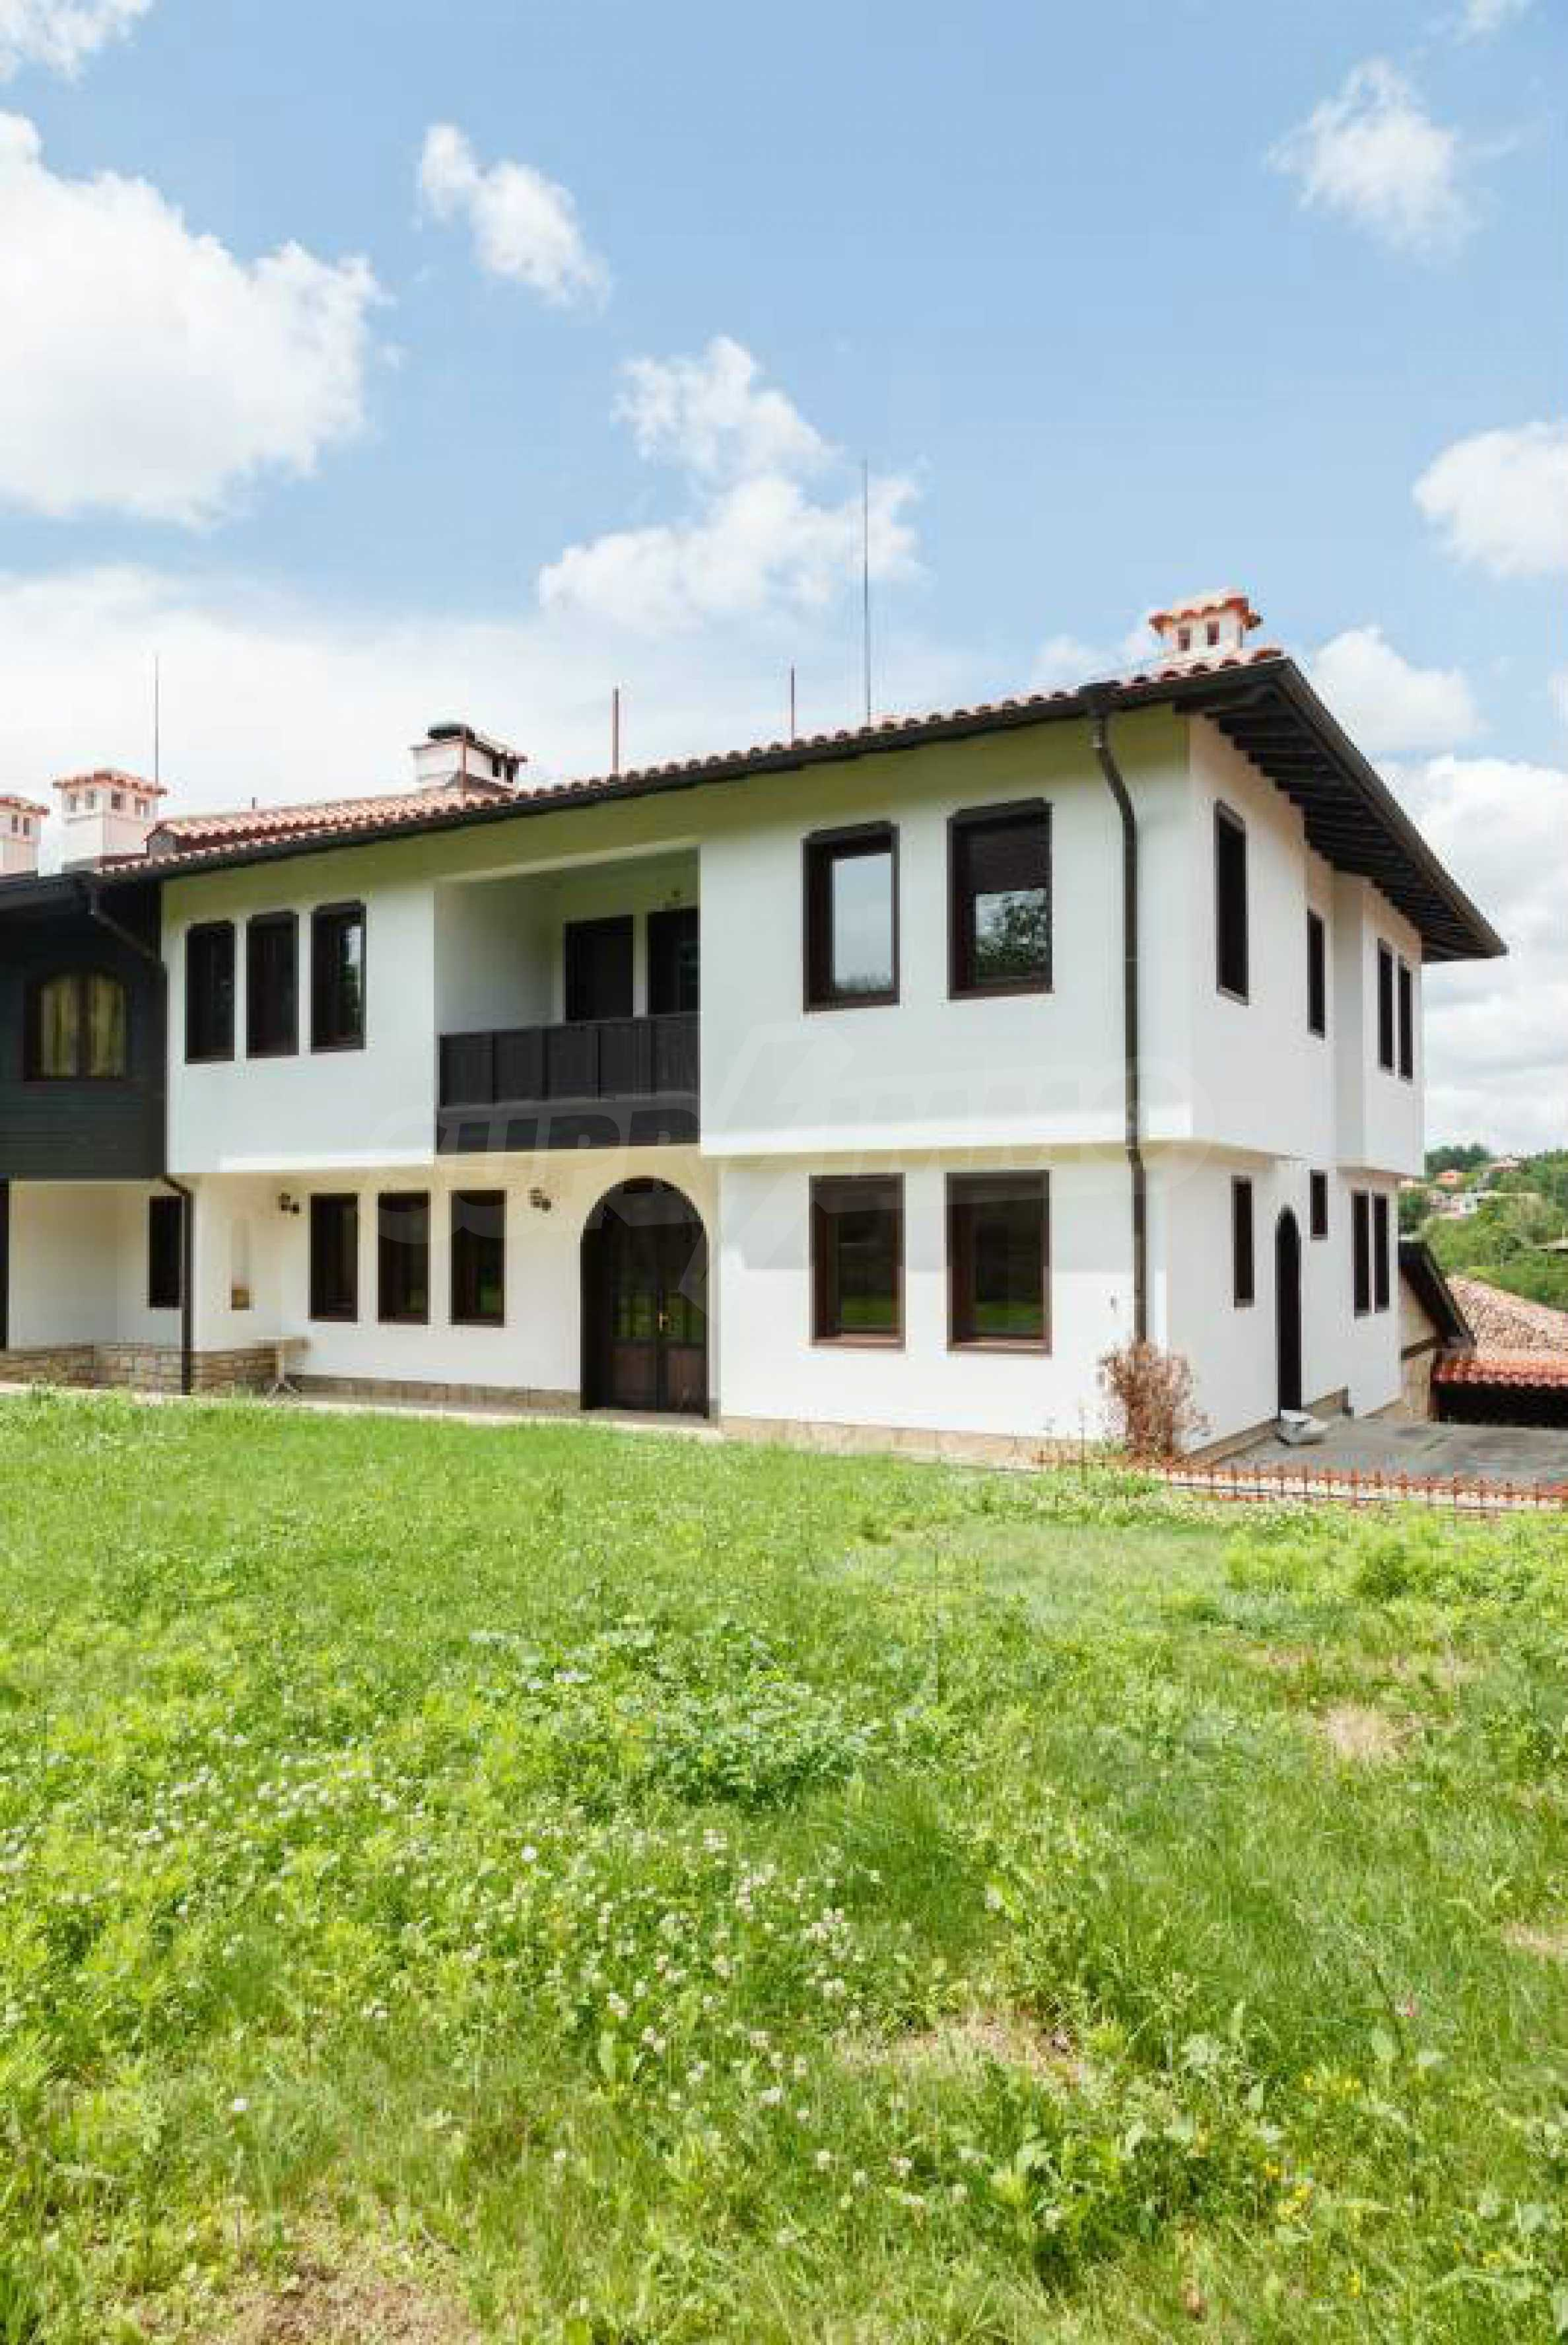 Fully equipped hotel, a restaurant, a house and a yard in the center of popular Arbanassi village 45